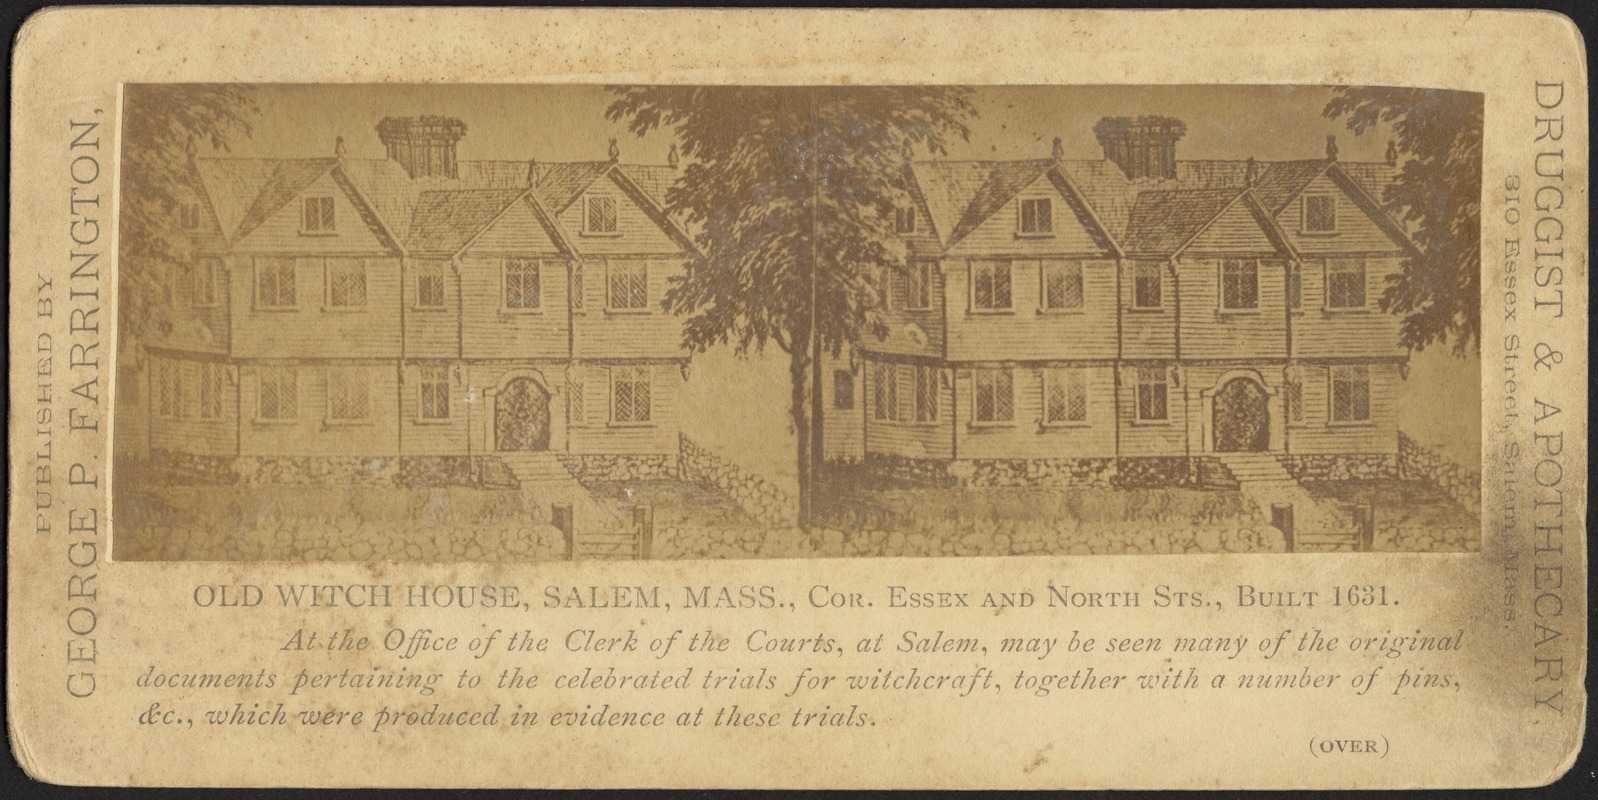 Old Witch House, Salem, Mass., cor. Essex and North Sts., built 1631